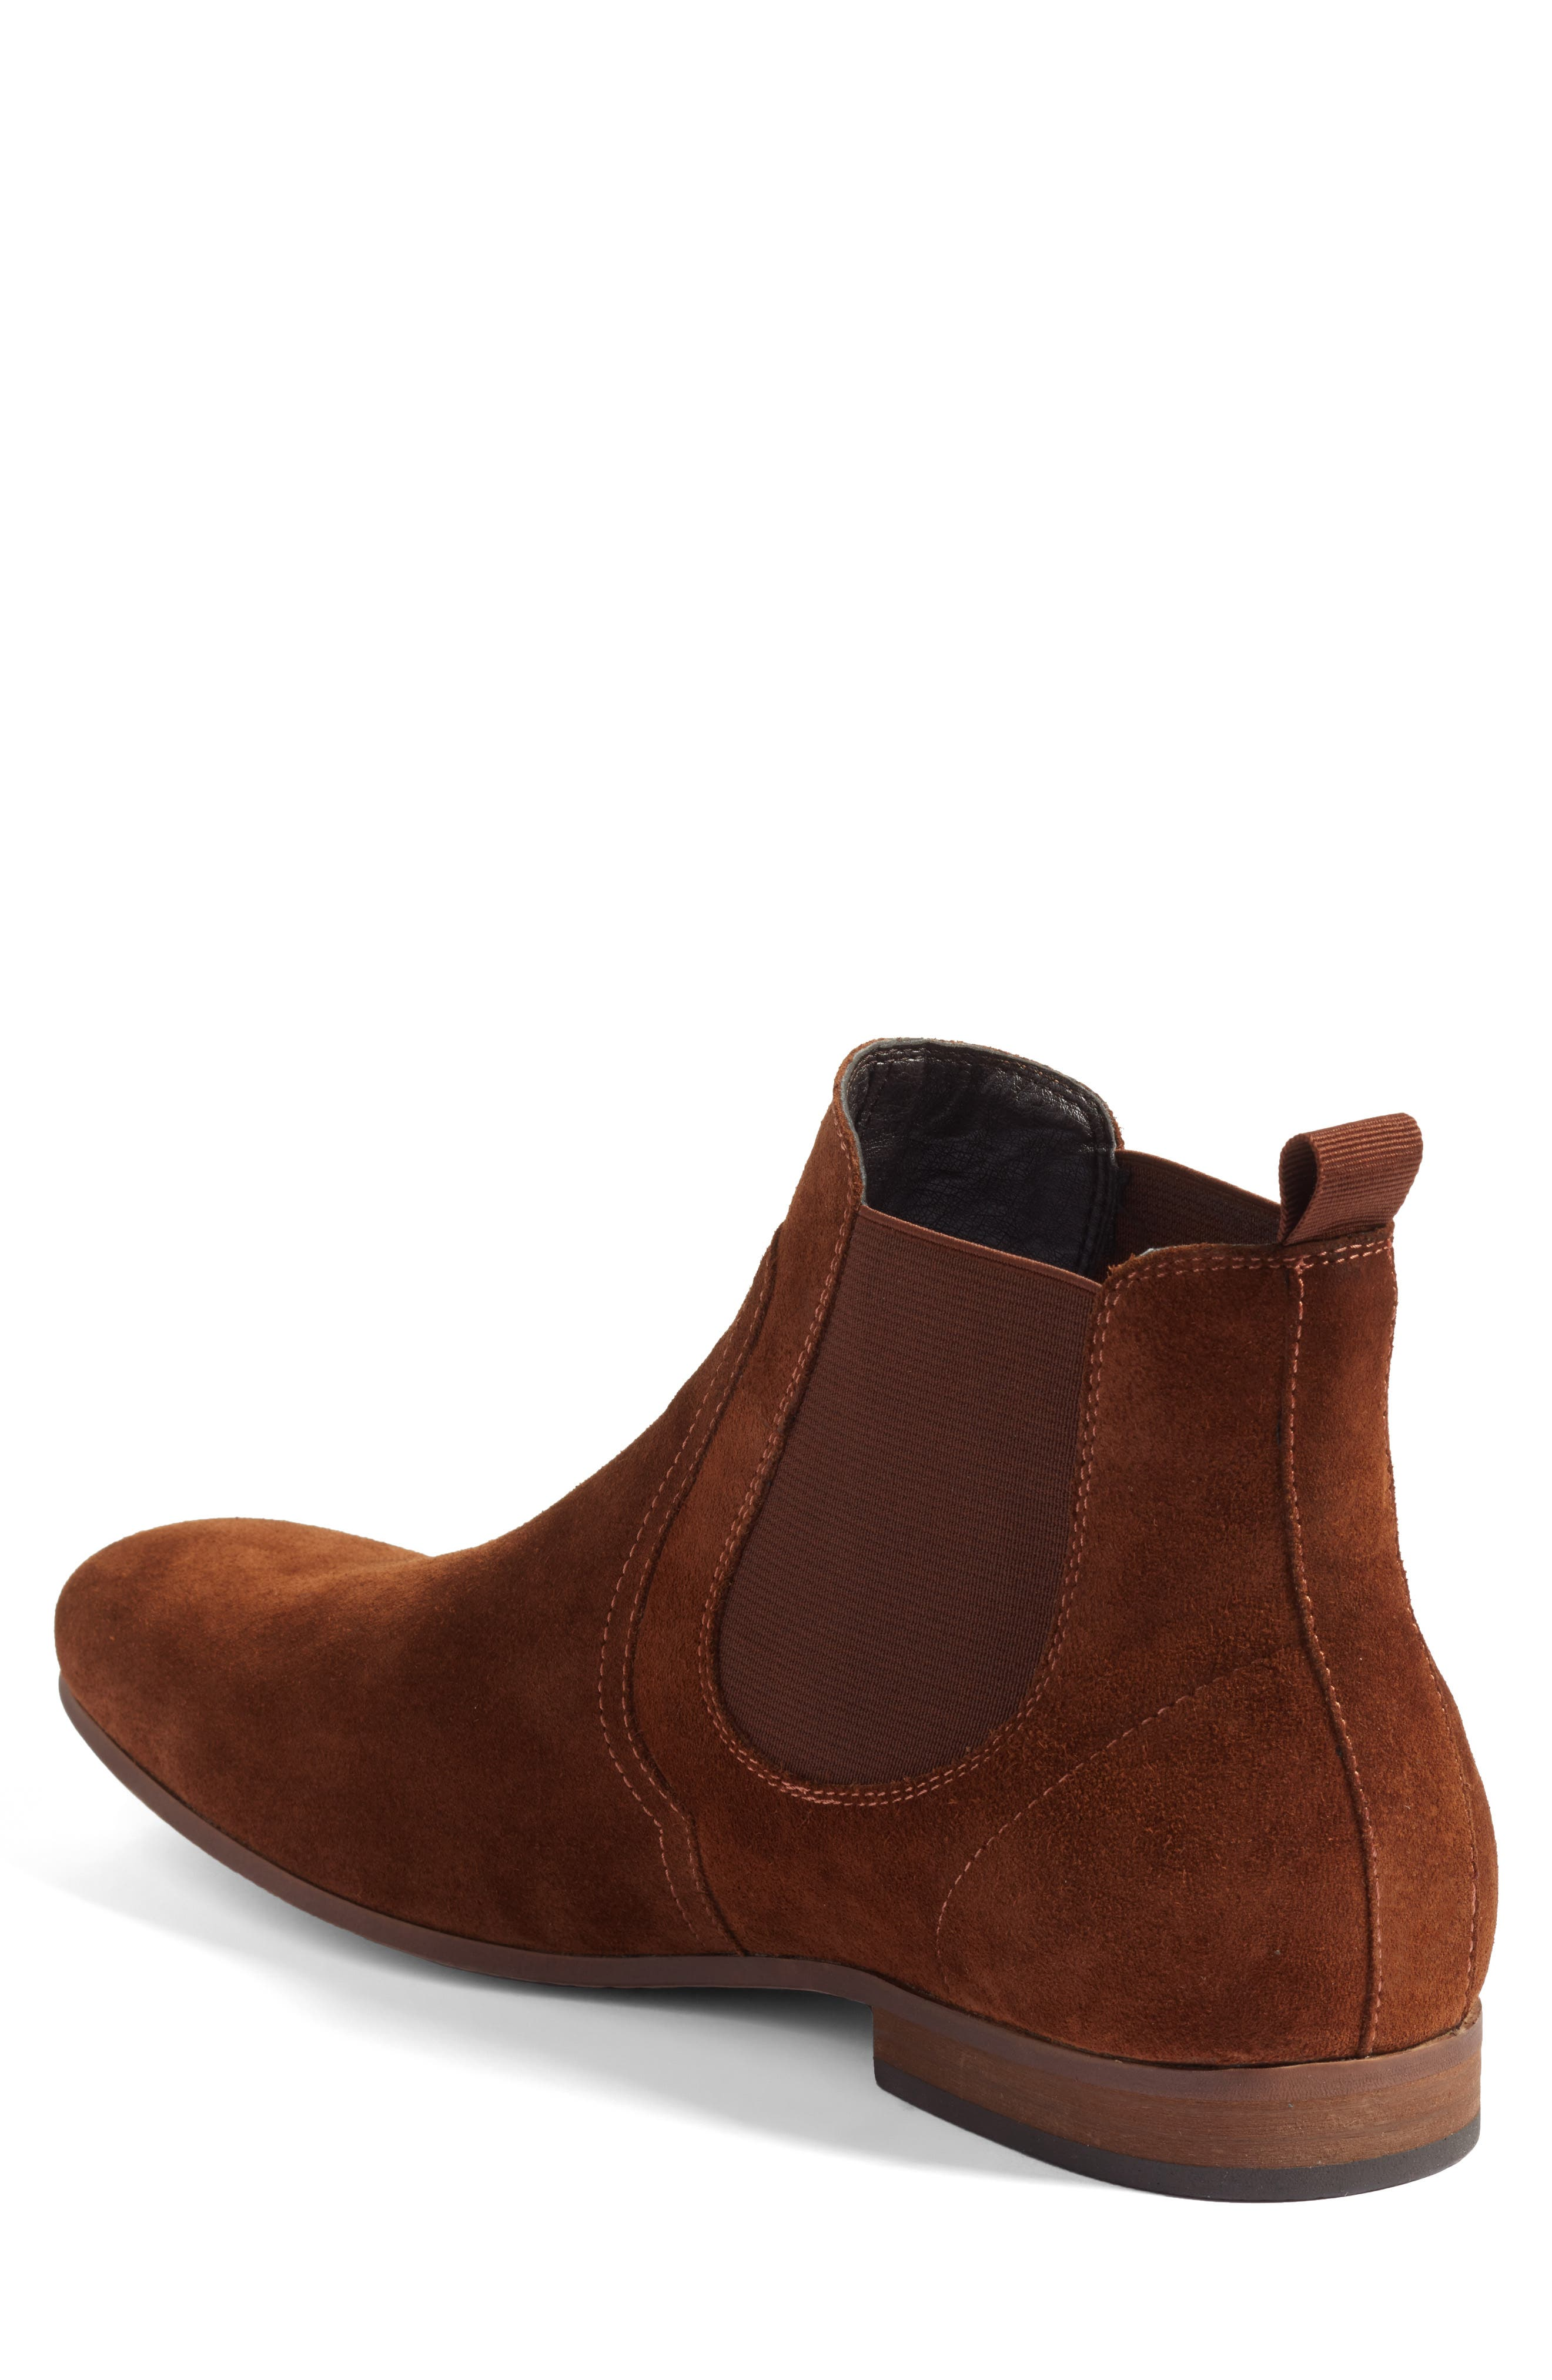 Brysen Chelsea Boot,                             Alternate thumbnail 29, color,